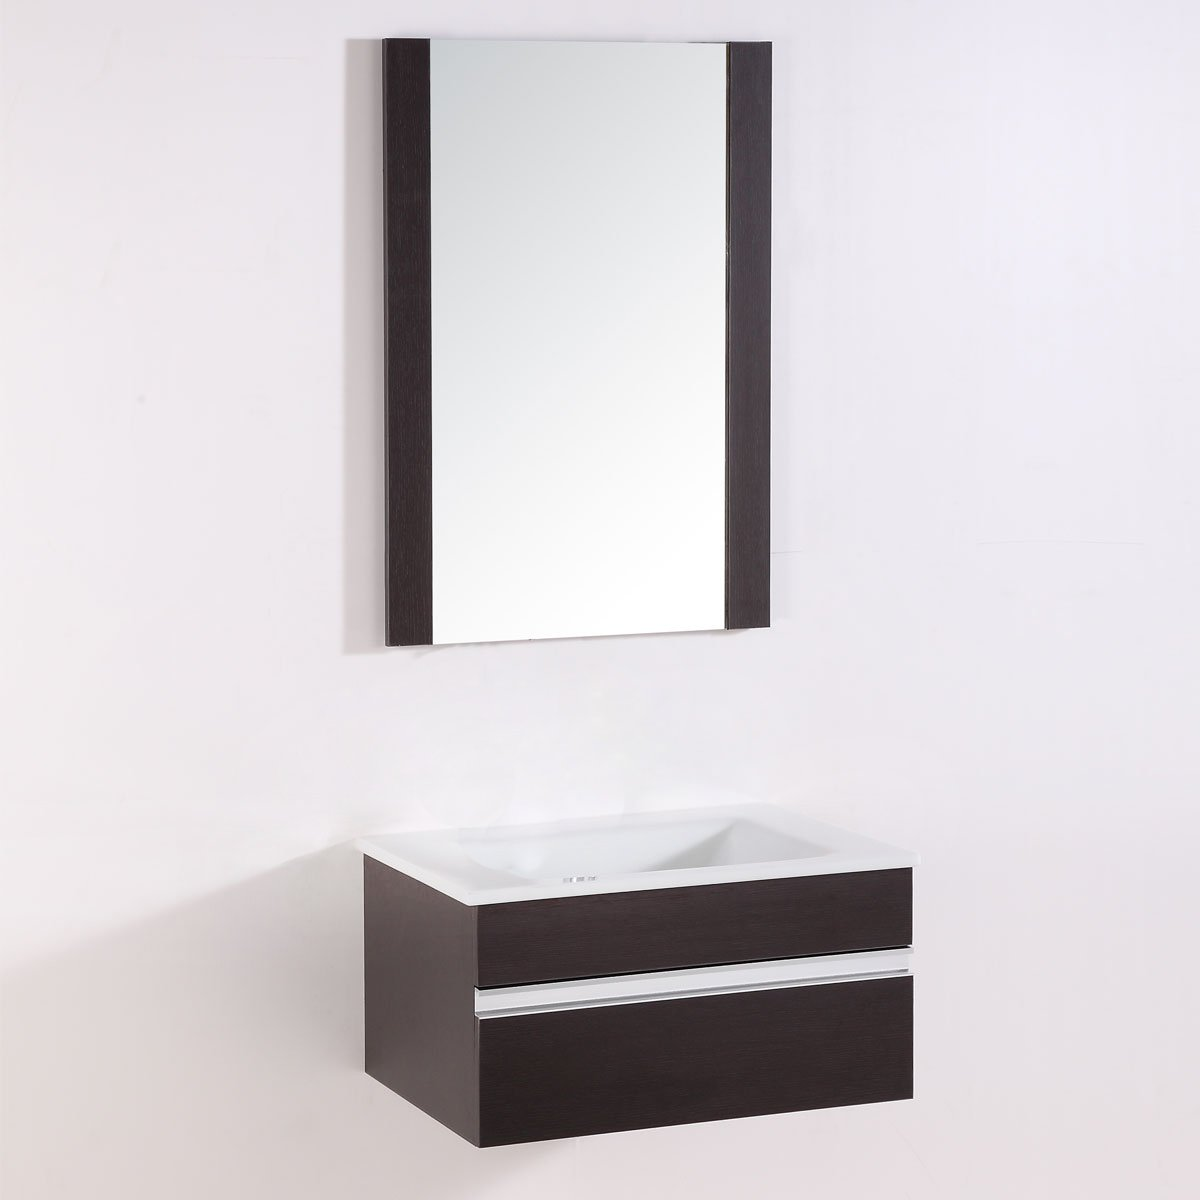 Decoraport 24 In. Wall Hung Bathroom Vanity Set with Single Sink and Mirror (A-TH9021A) by Decoraport